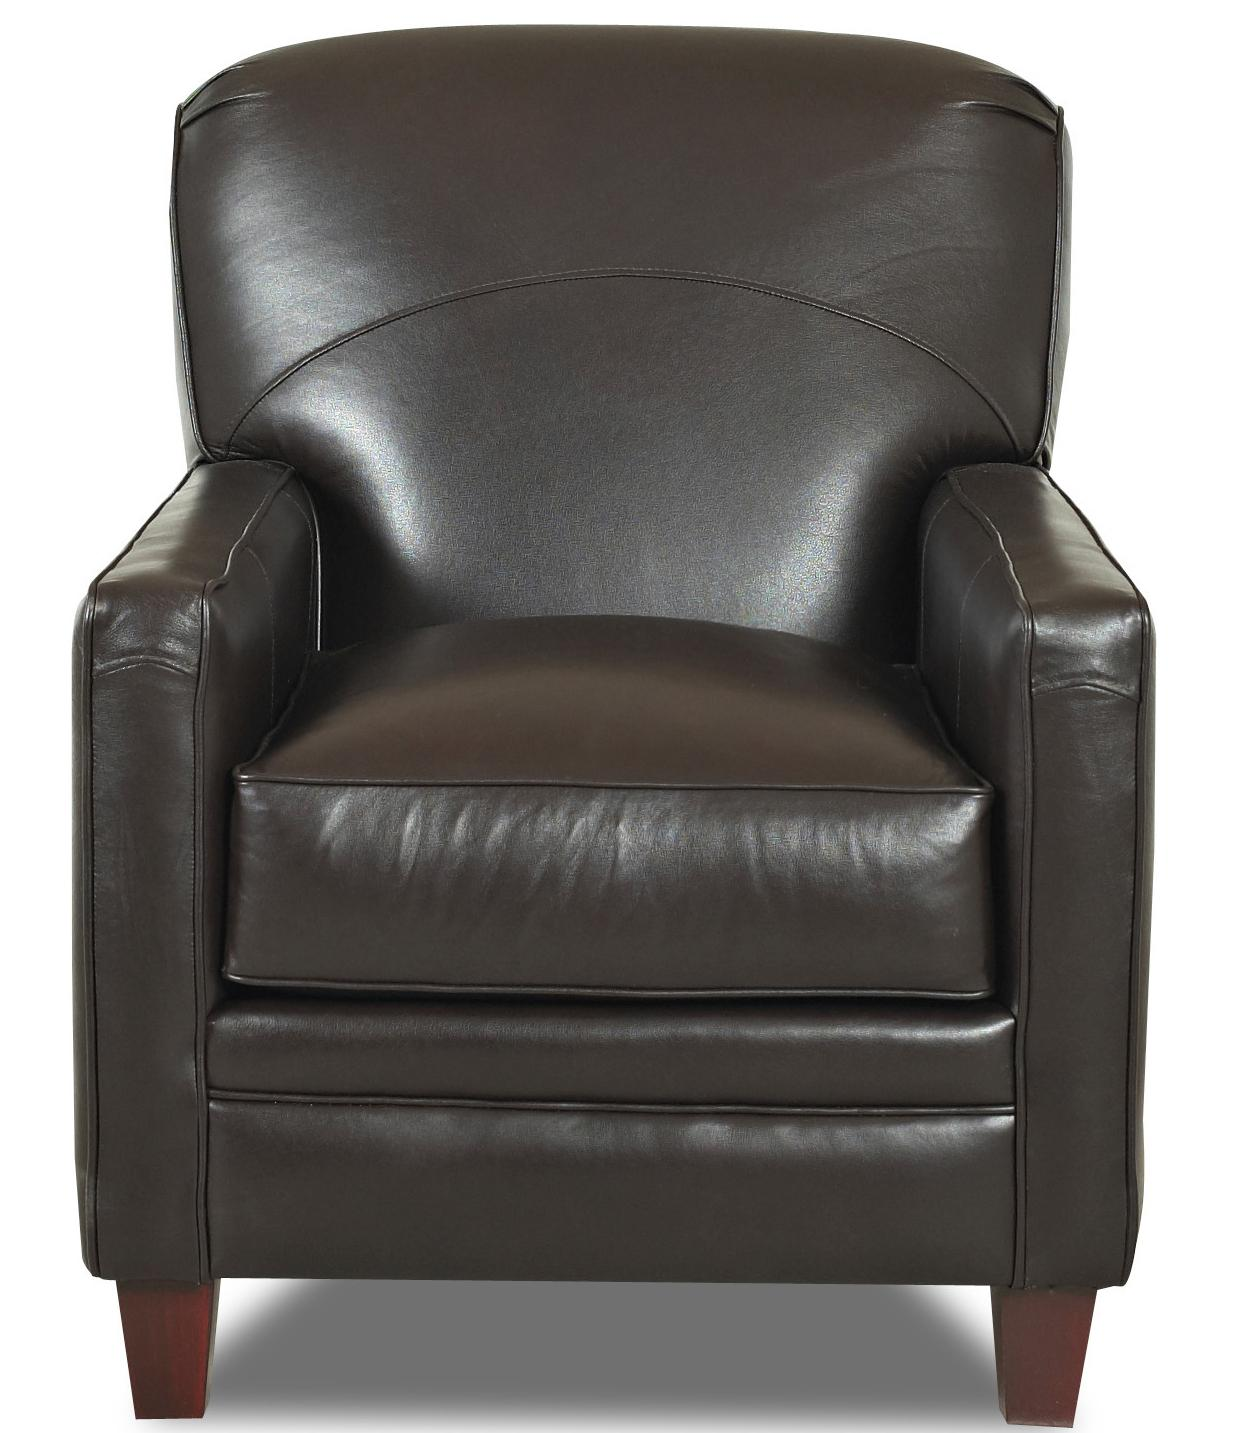 Selection Chair by Klaussner at Johnny Janosik